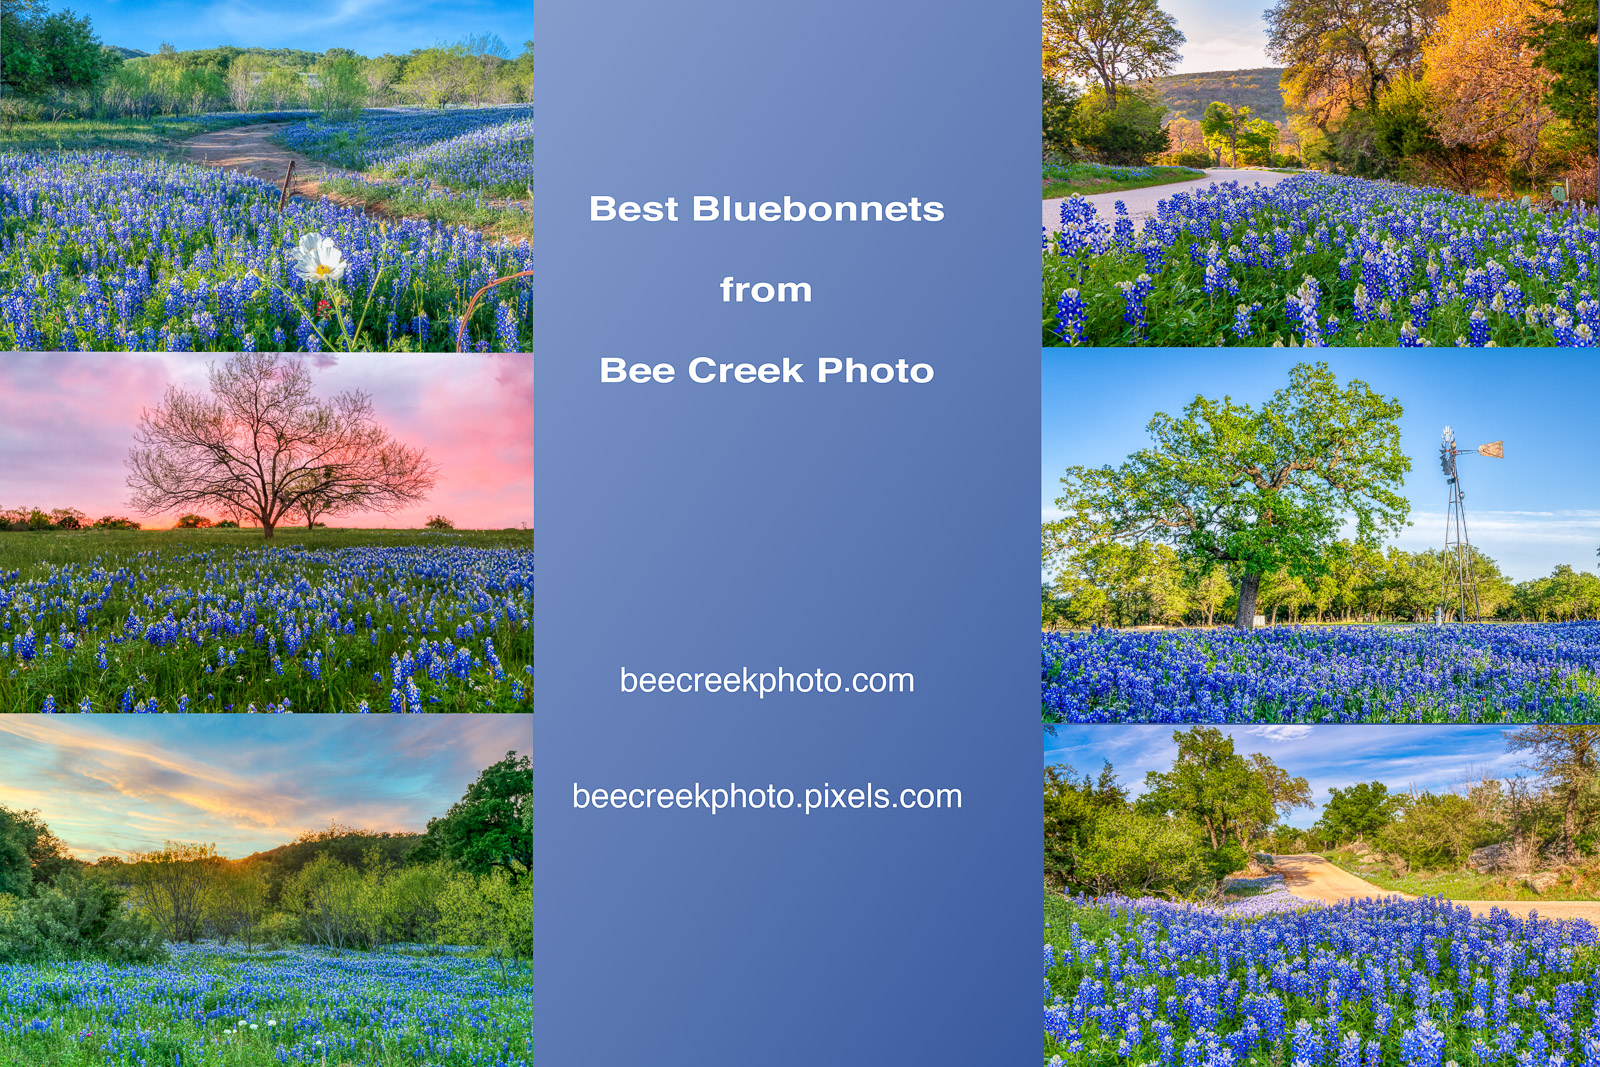 Here are just some of our bluebonnet photos to see more please go to our bluebonnets and wildflowers gallery